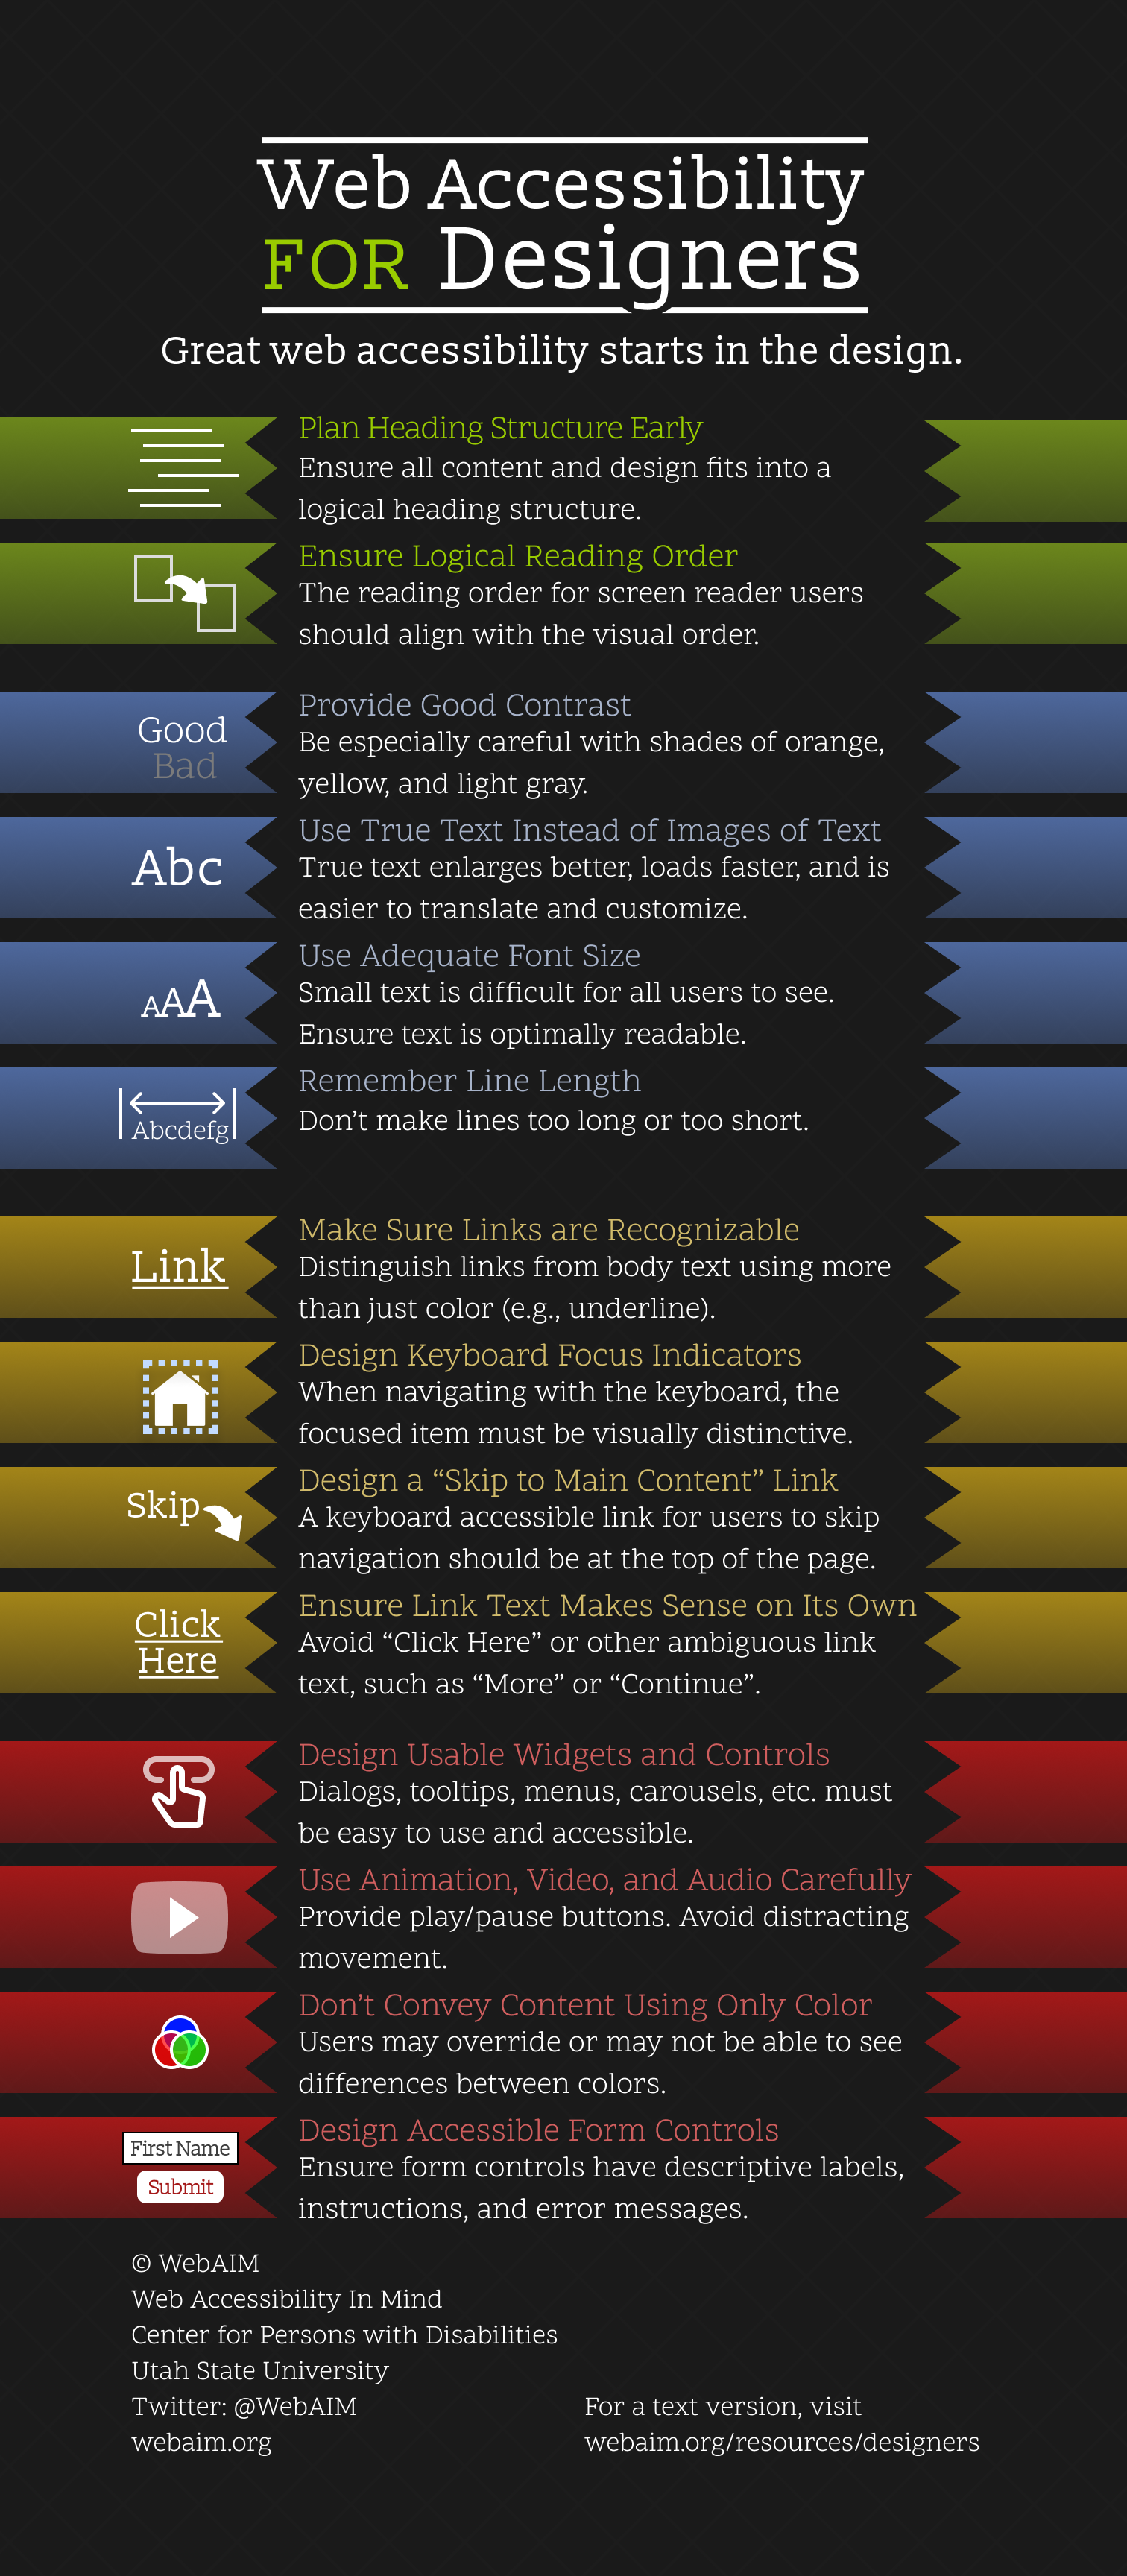 Web Accessibility for Designers infographic with link to text version at WebAIM.org